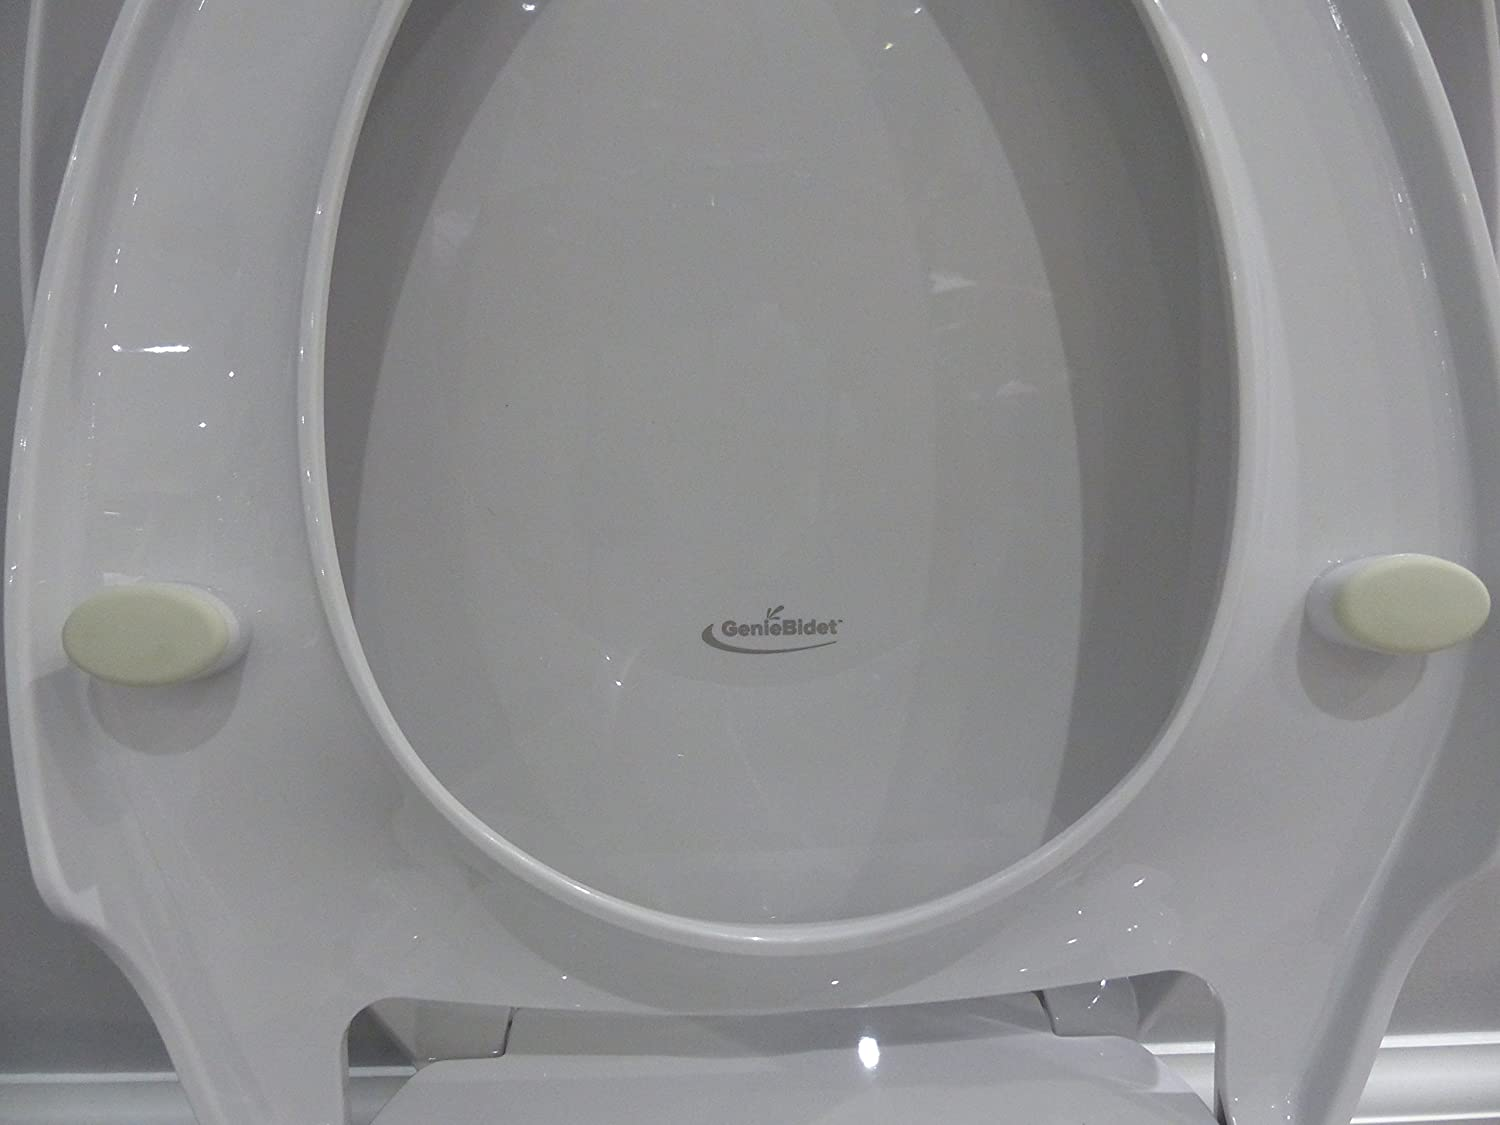 Marvelous Geniebidet Round Seat Self Cleaning Dual Nozzles Rear Feminine Cleaning No Wiring Required Simple 20 45 Minute Installation Or Less Hybrid T Evergreenethics Interior Chair Design Evergreenethicsorg